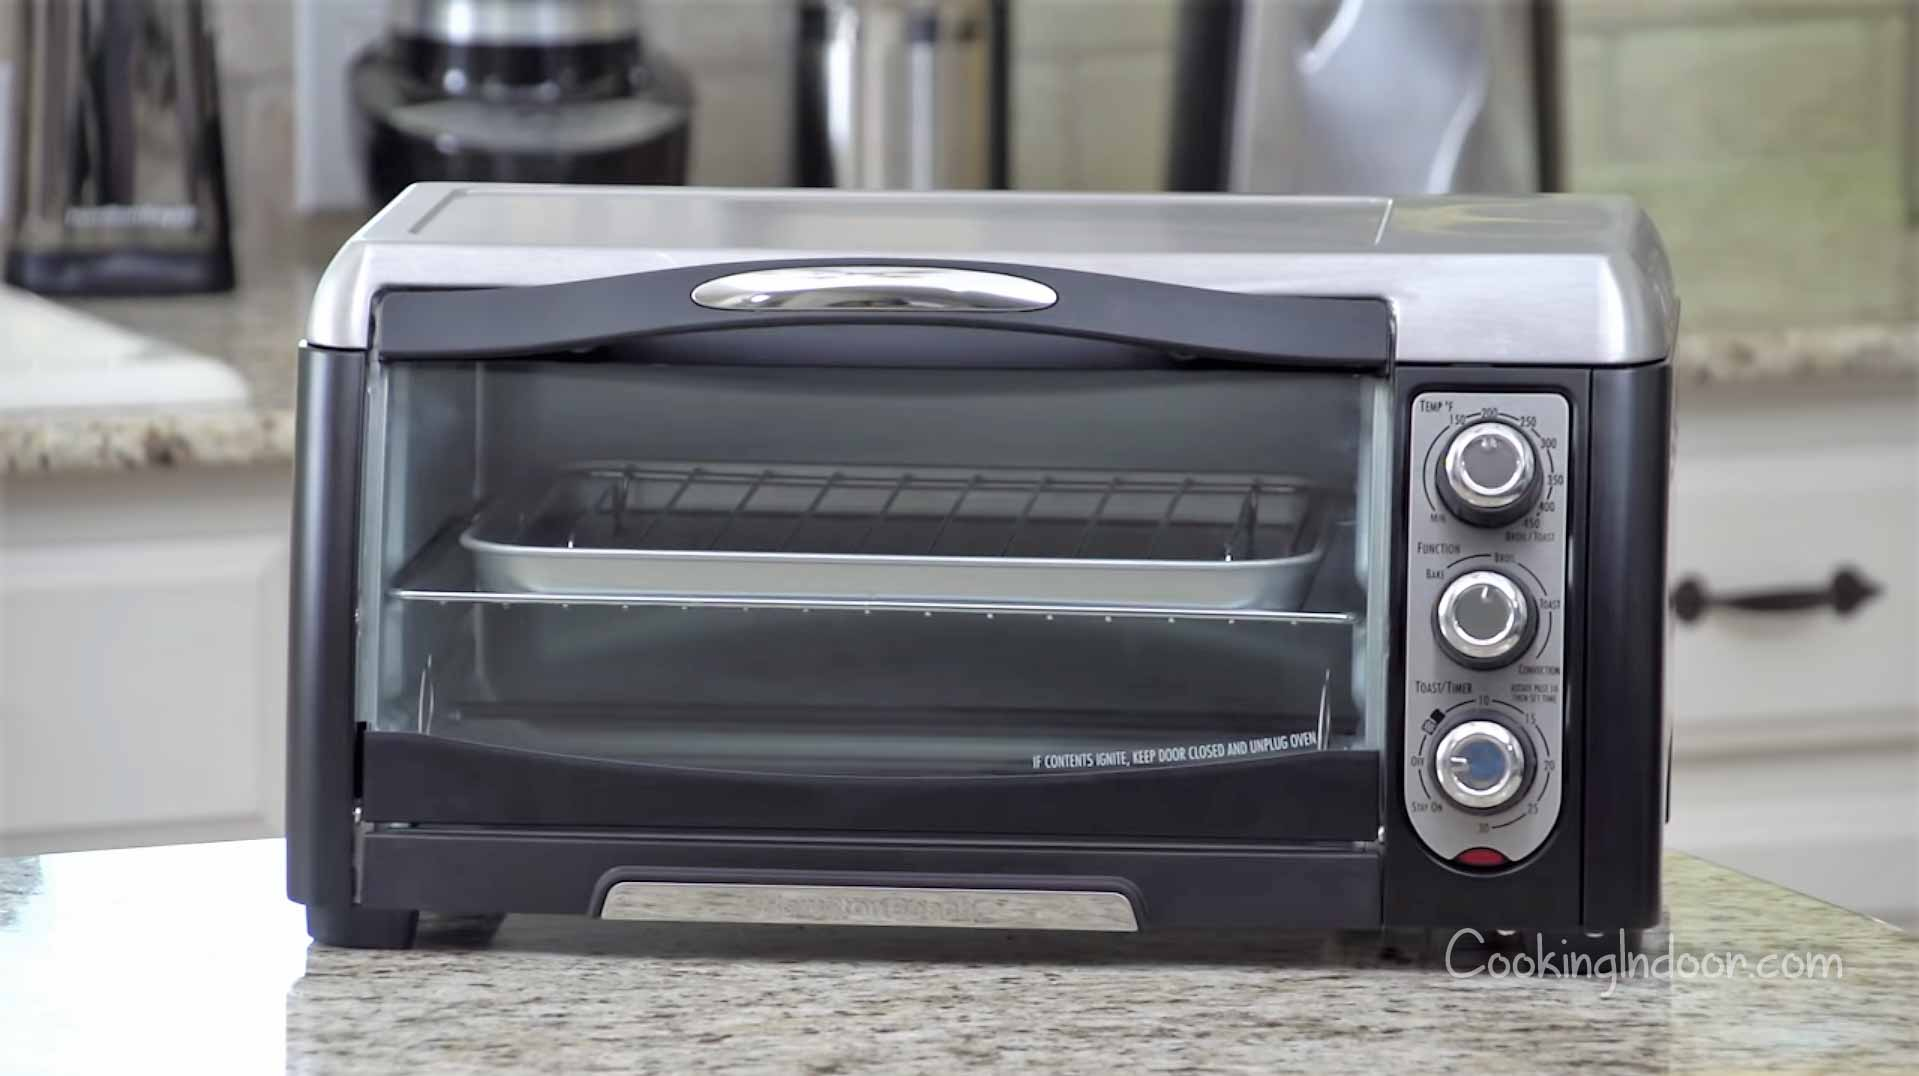 Best cool touch toaster oven